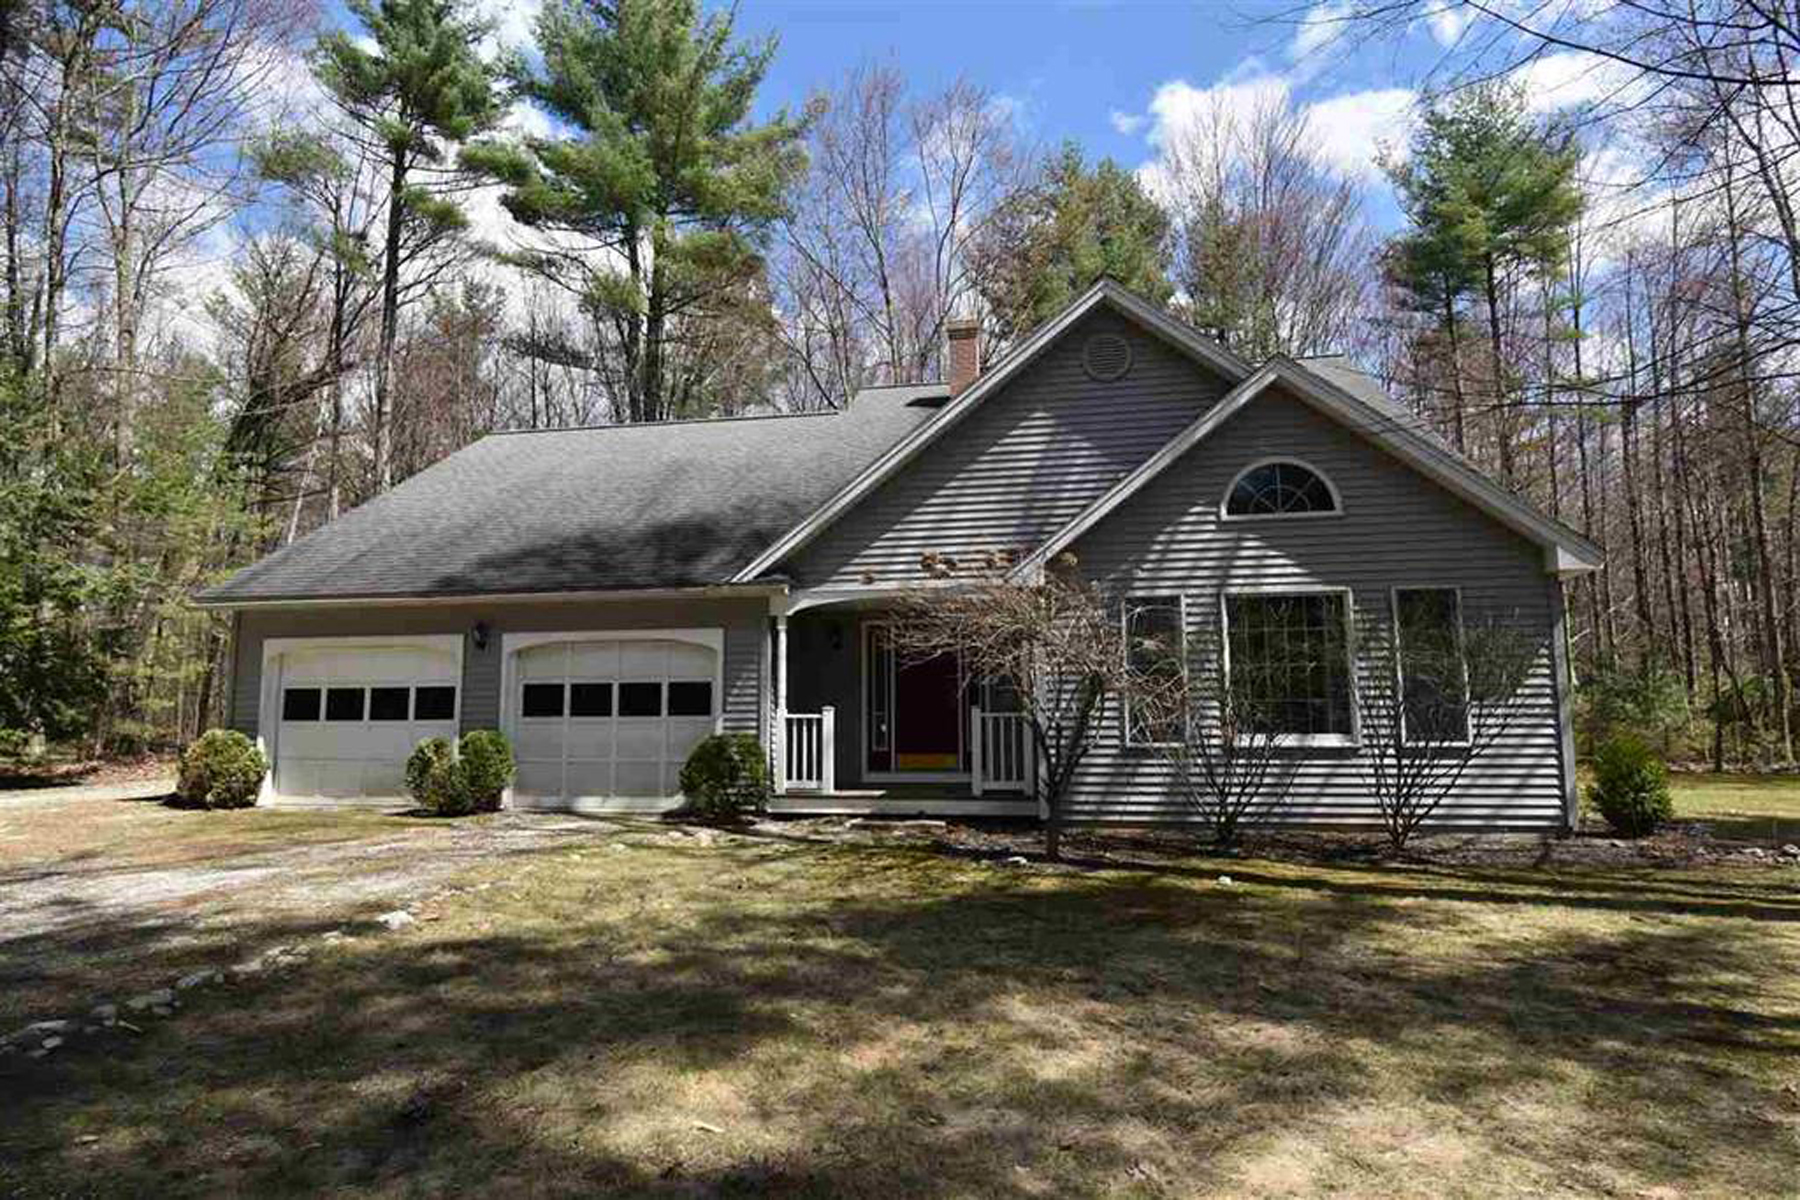 Single Family Homes for Sale at Spring Wood Acres Contemporary Cape 177 Woodland Dr Pittsford, Vermont 05763 United States